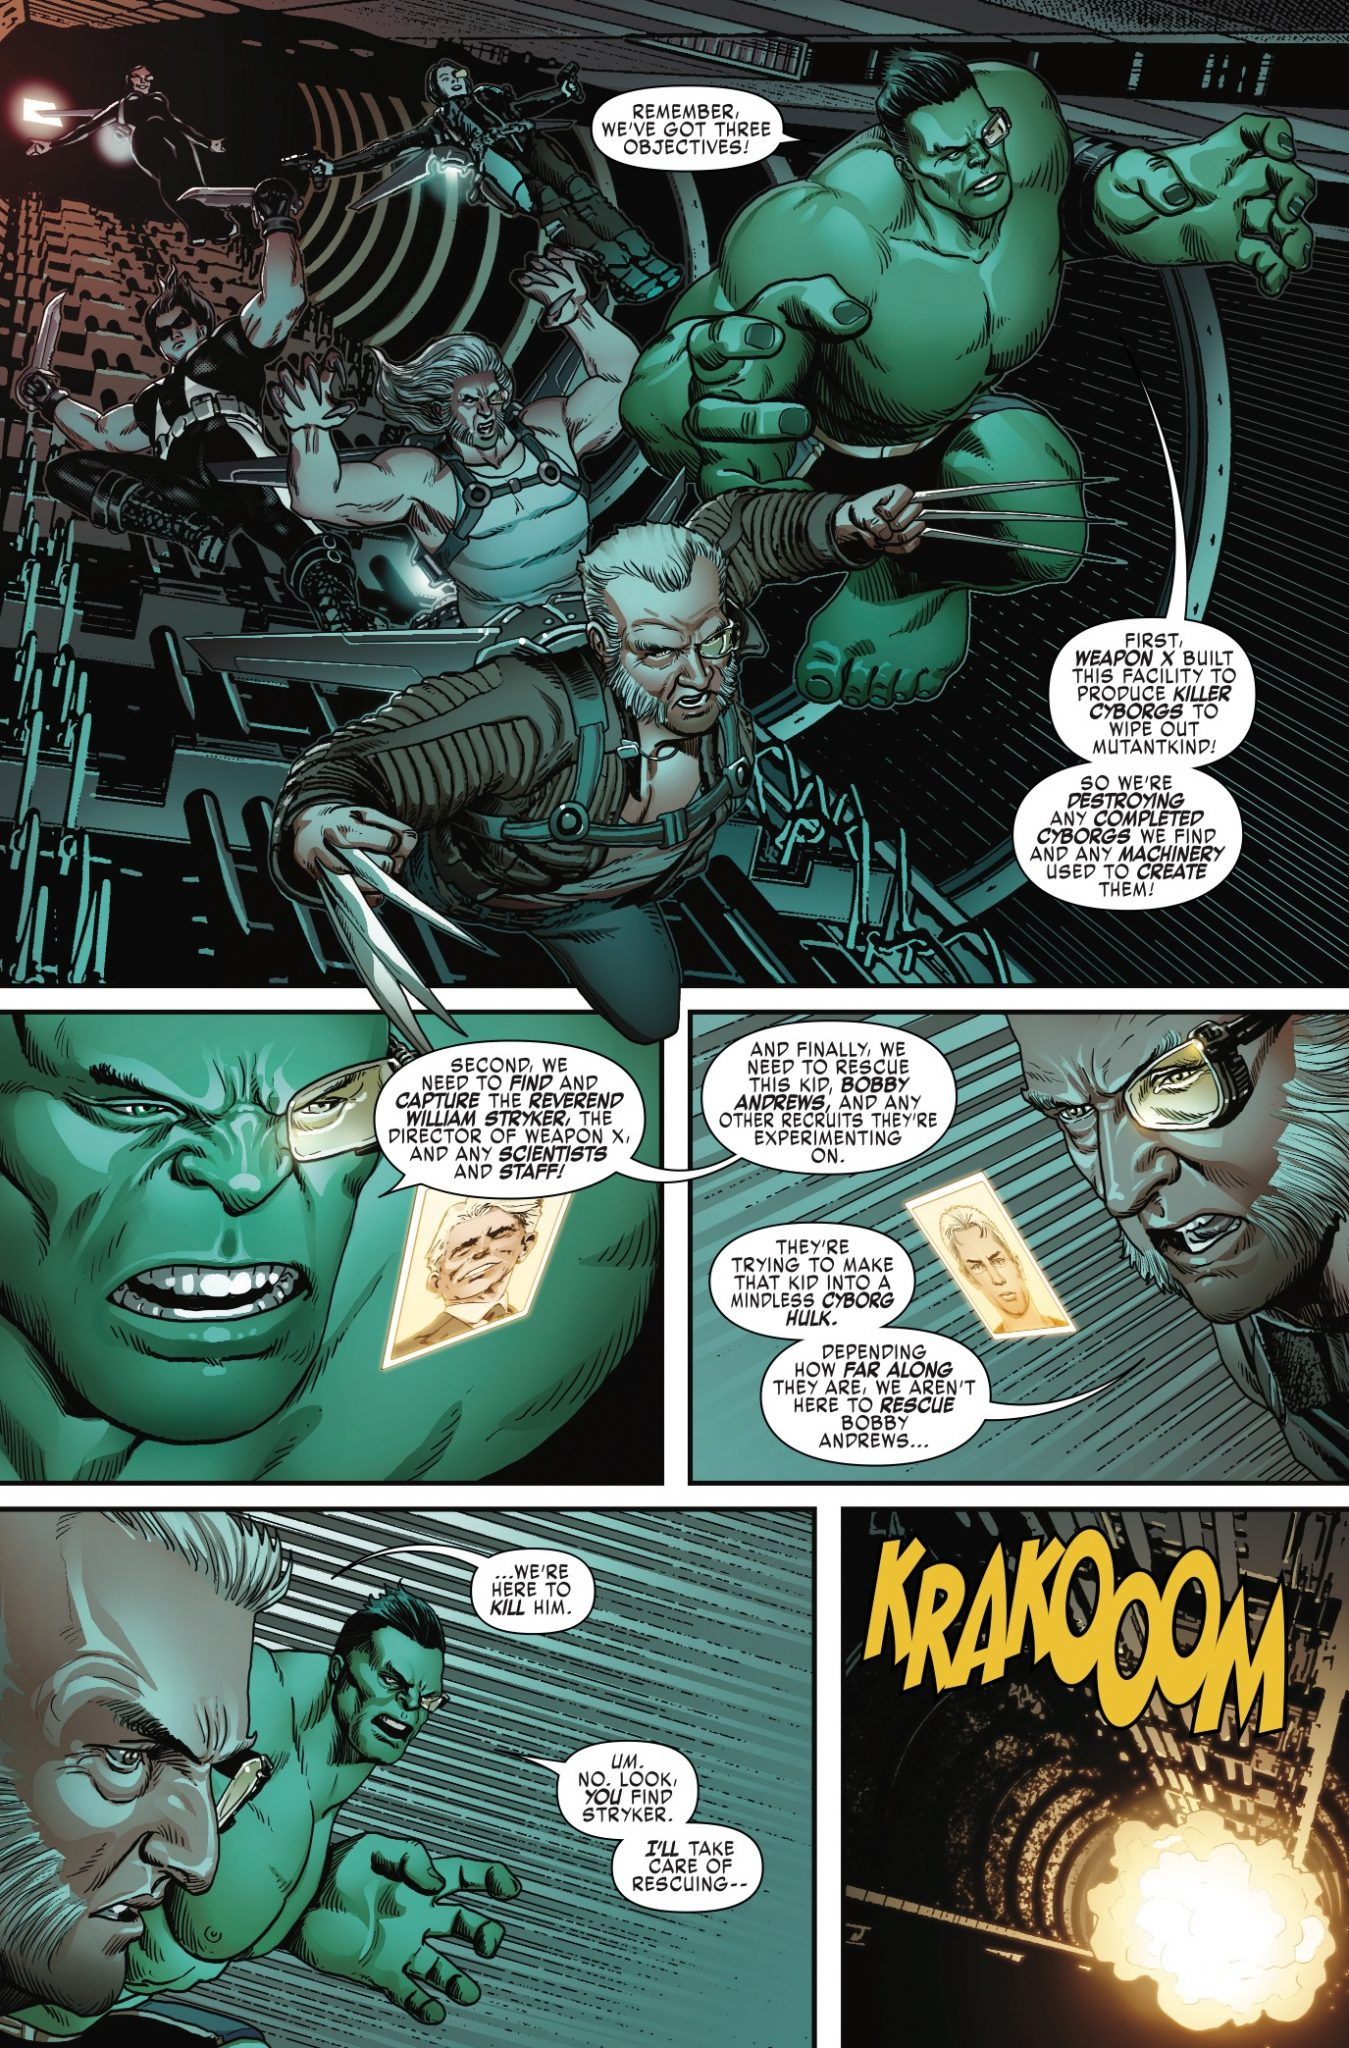 Monster mayhem and special ops: Weapon X #6 is great fun